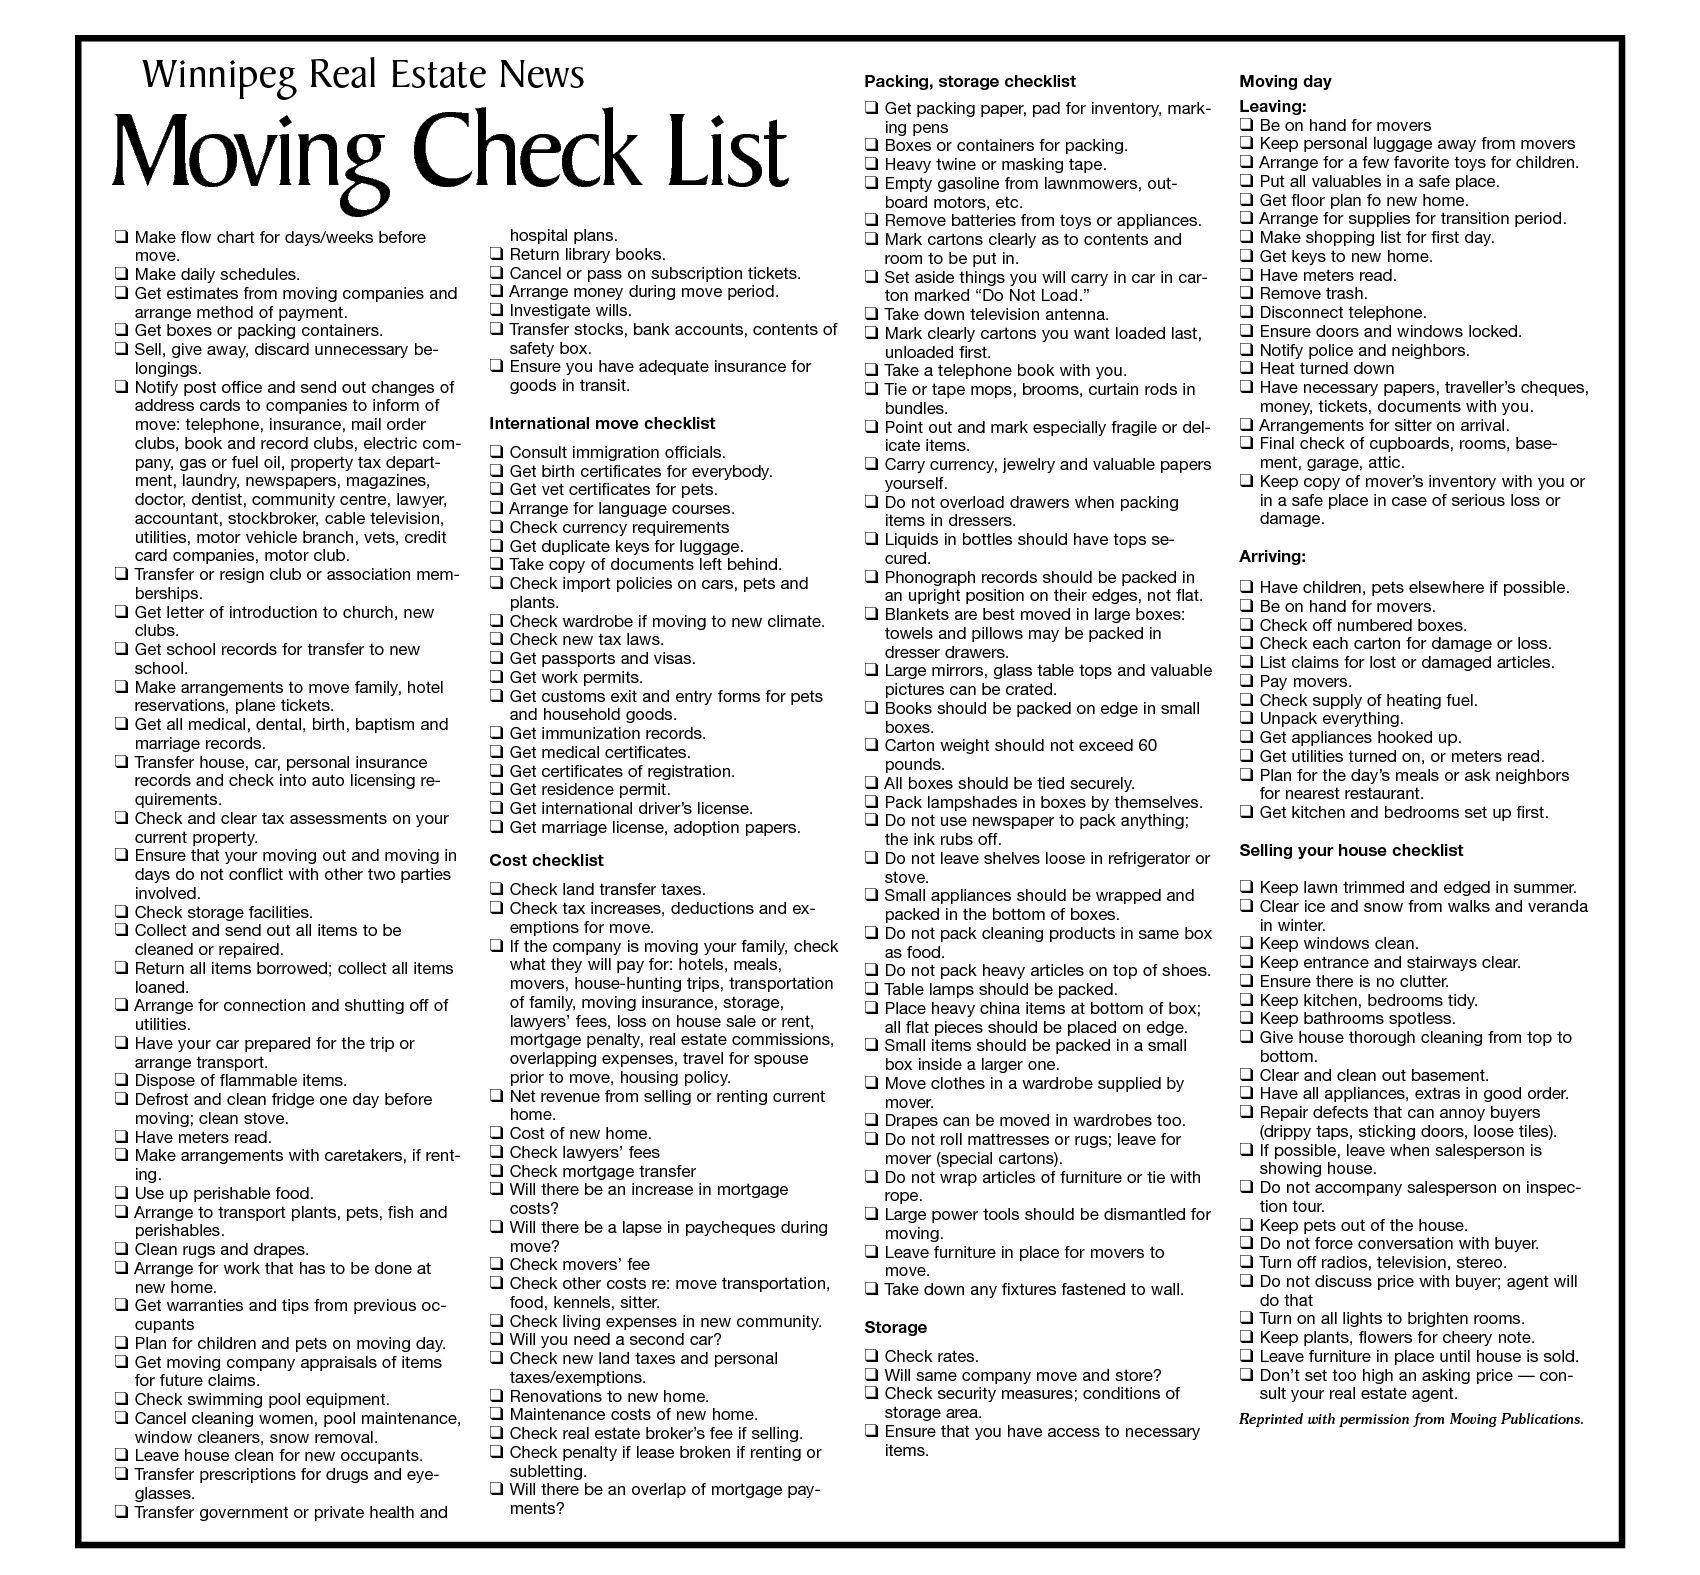 moving checklist template | Moving | Pinterest | Checklist template